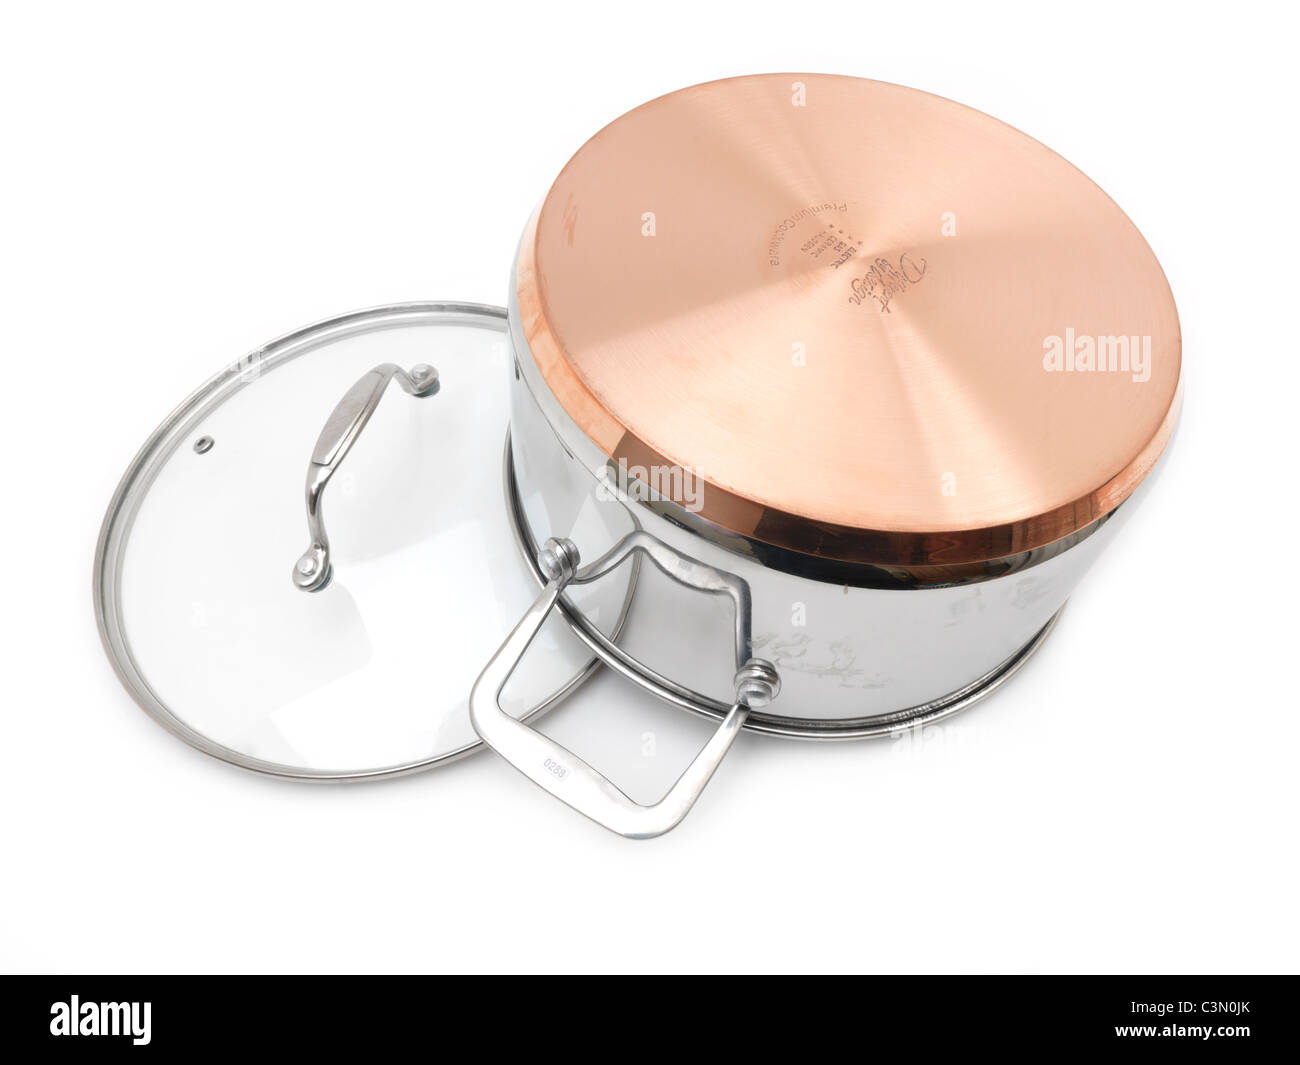 Copper Bottom Cooking Pot With Glass Lid - Stock Image